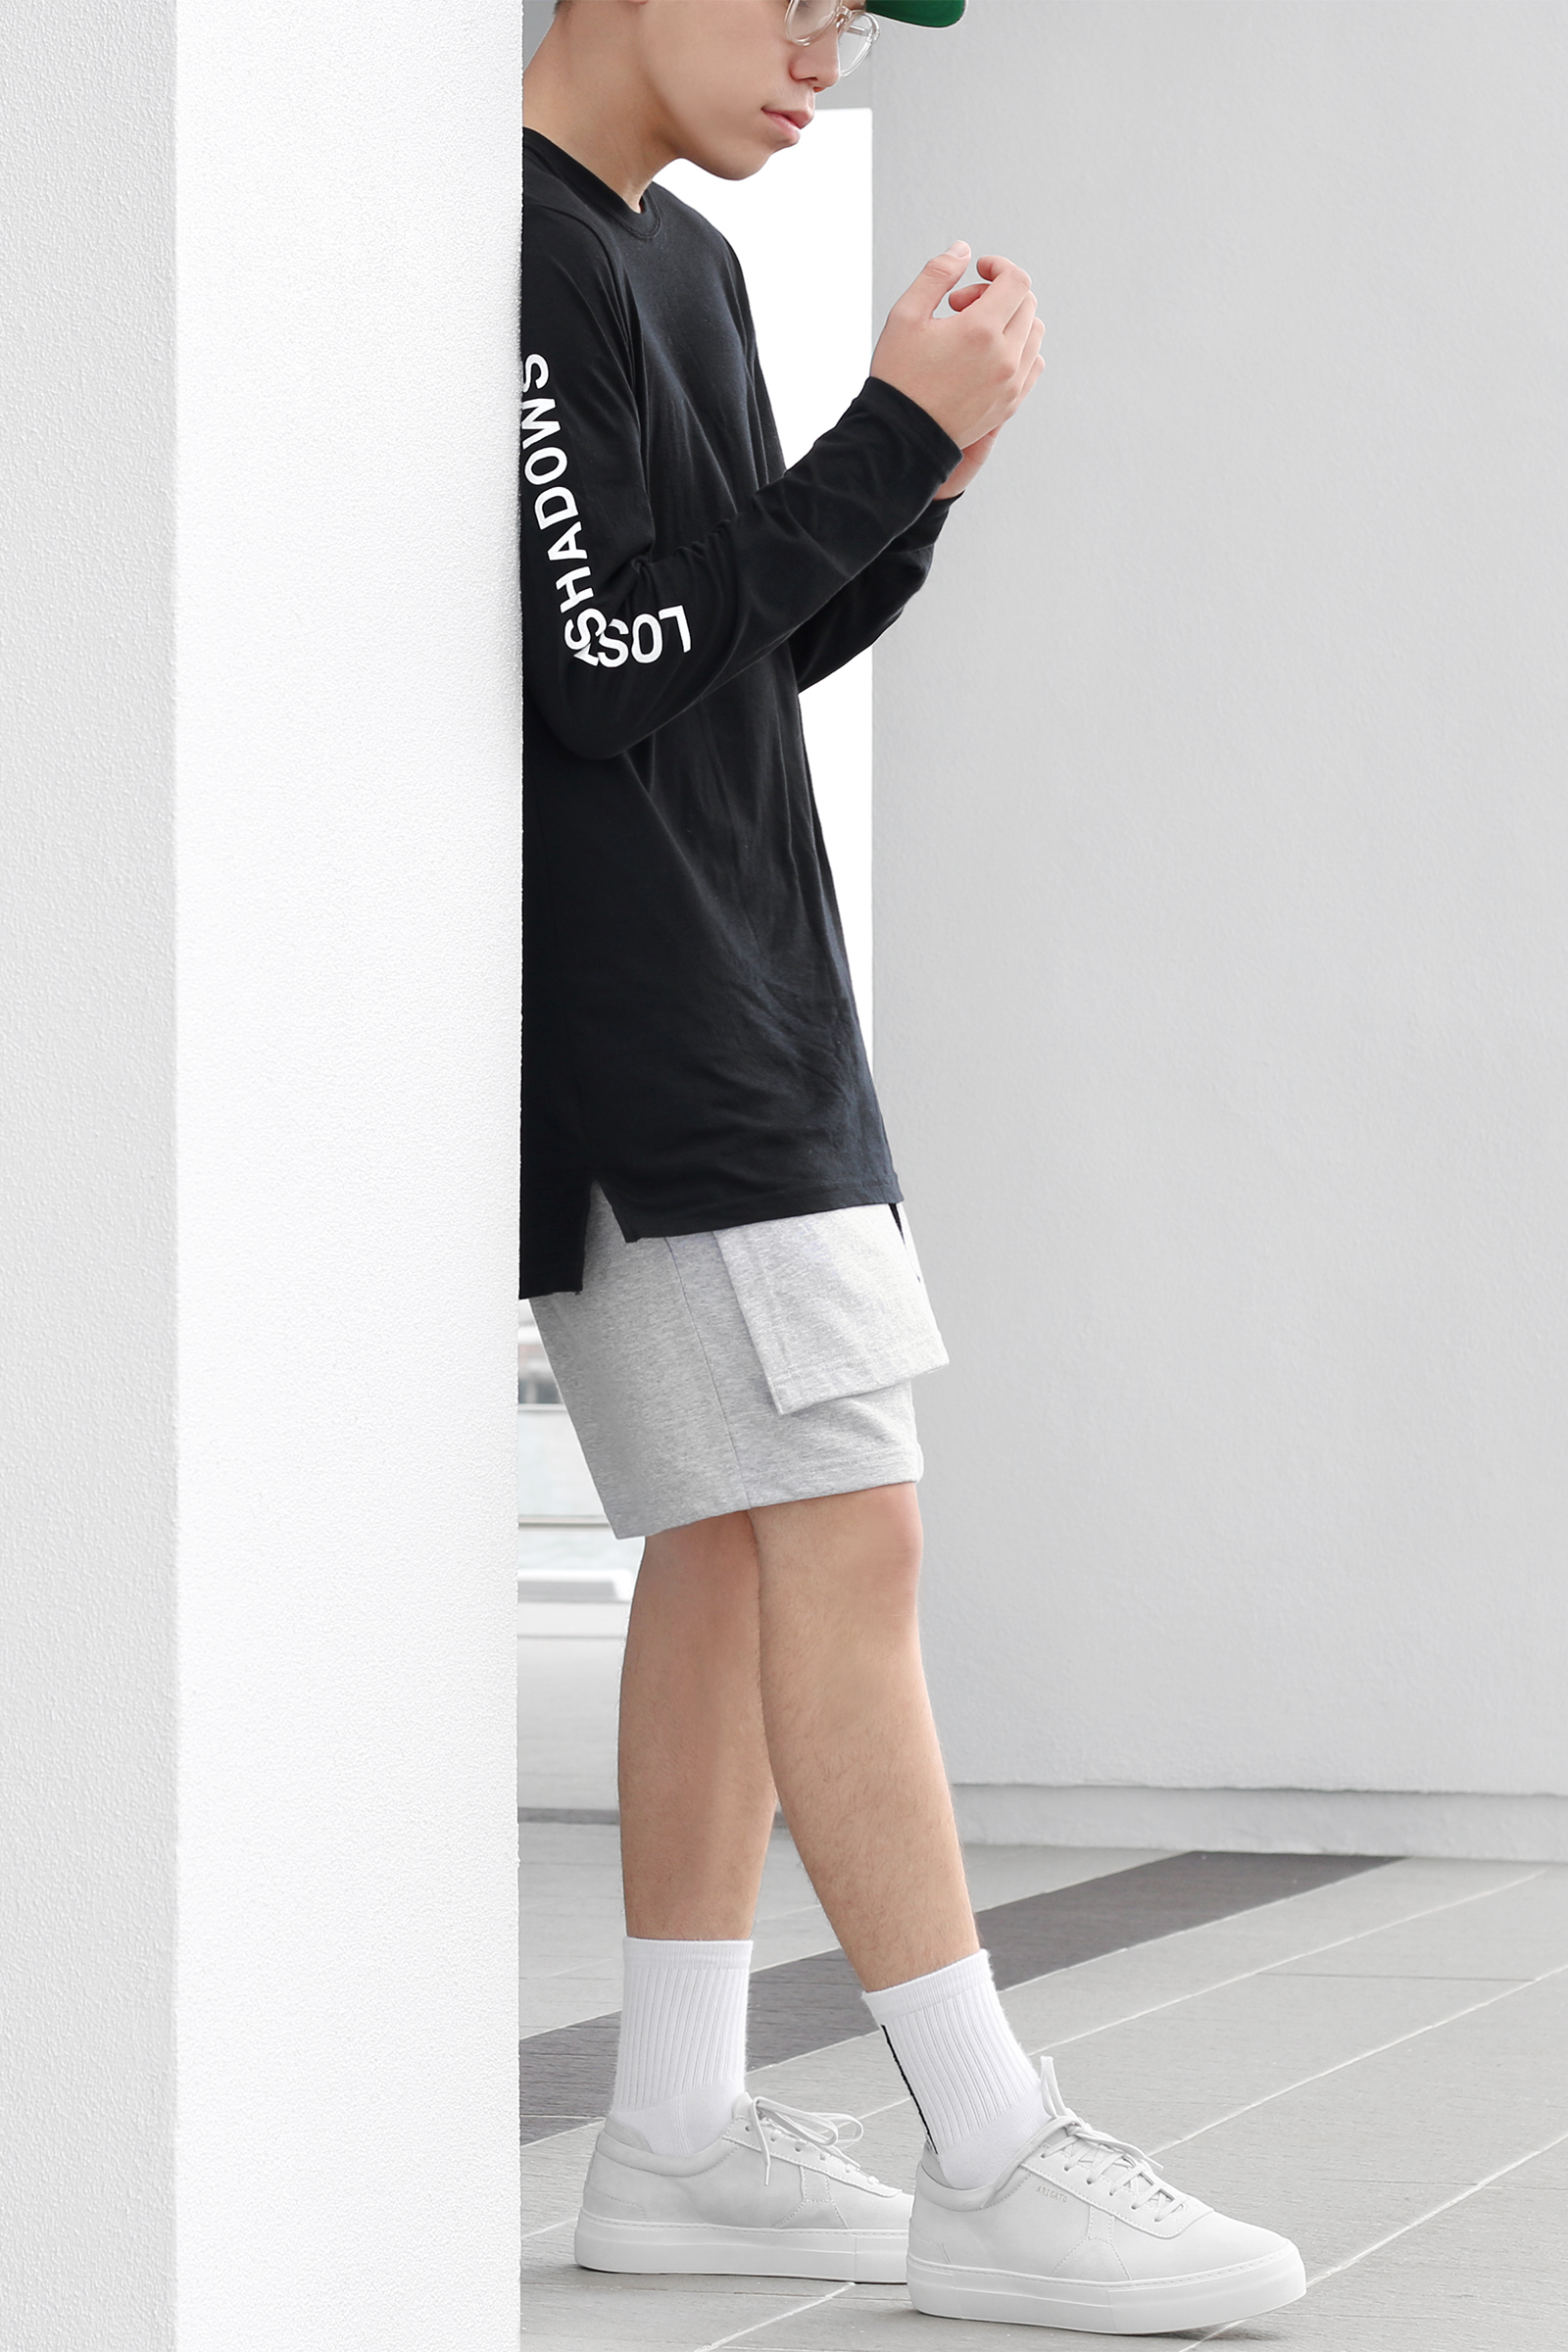 Editorial  Limited Capsule Collection Lost Shadows